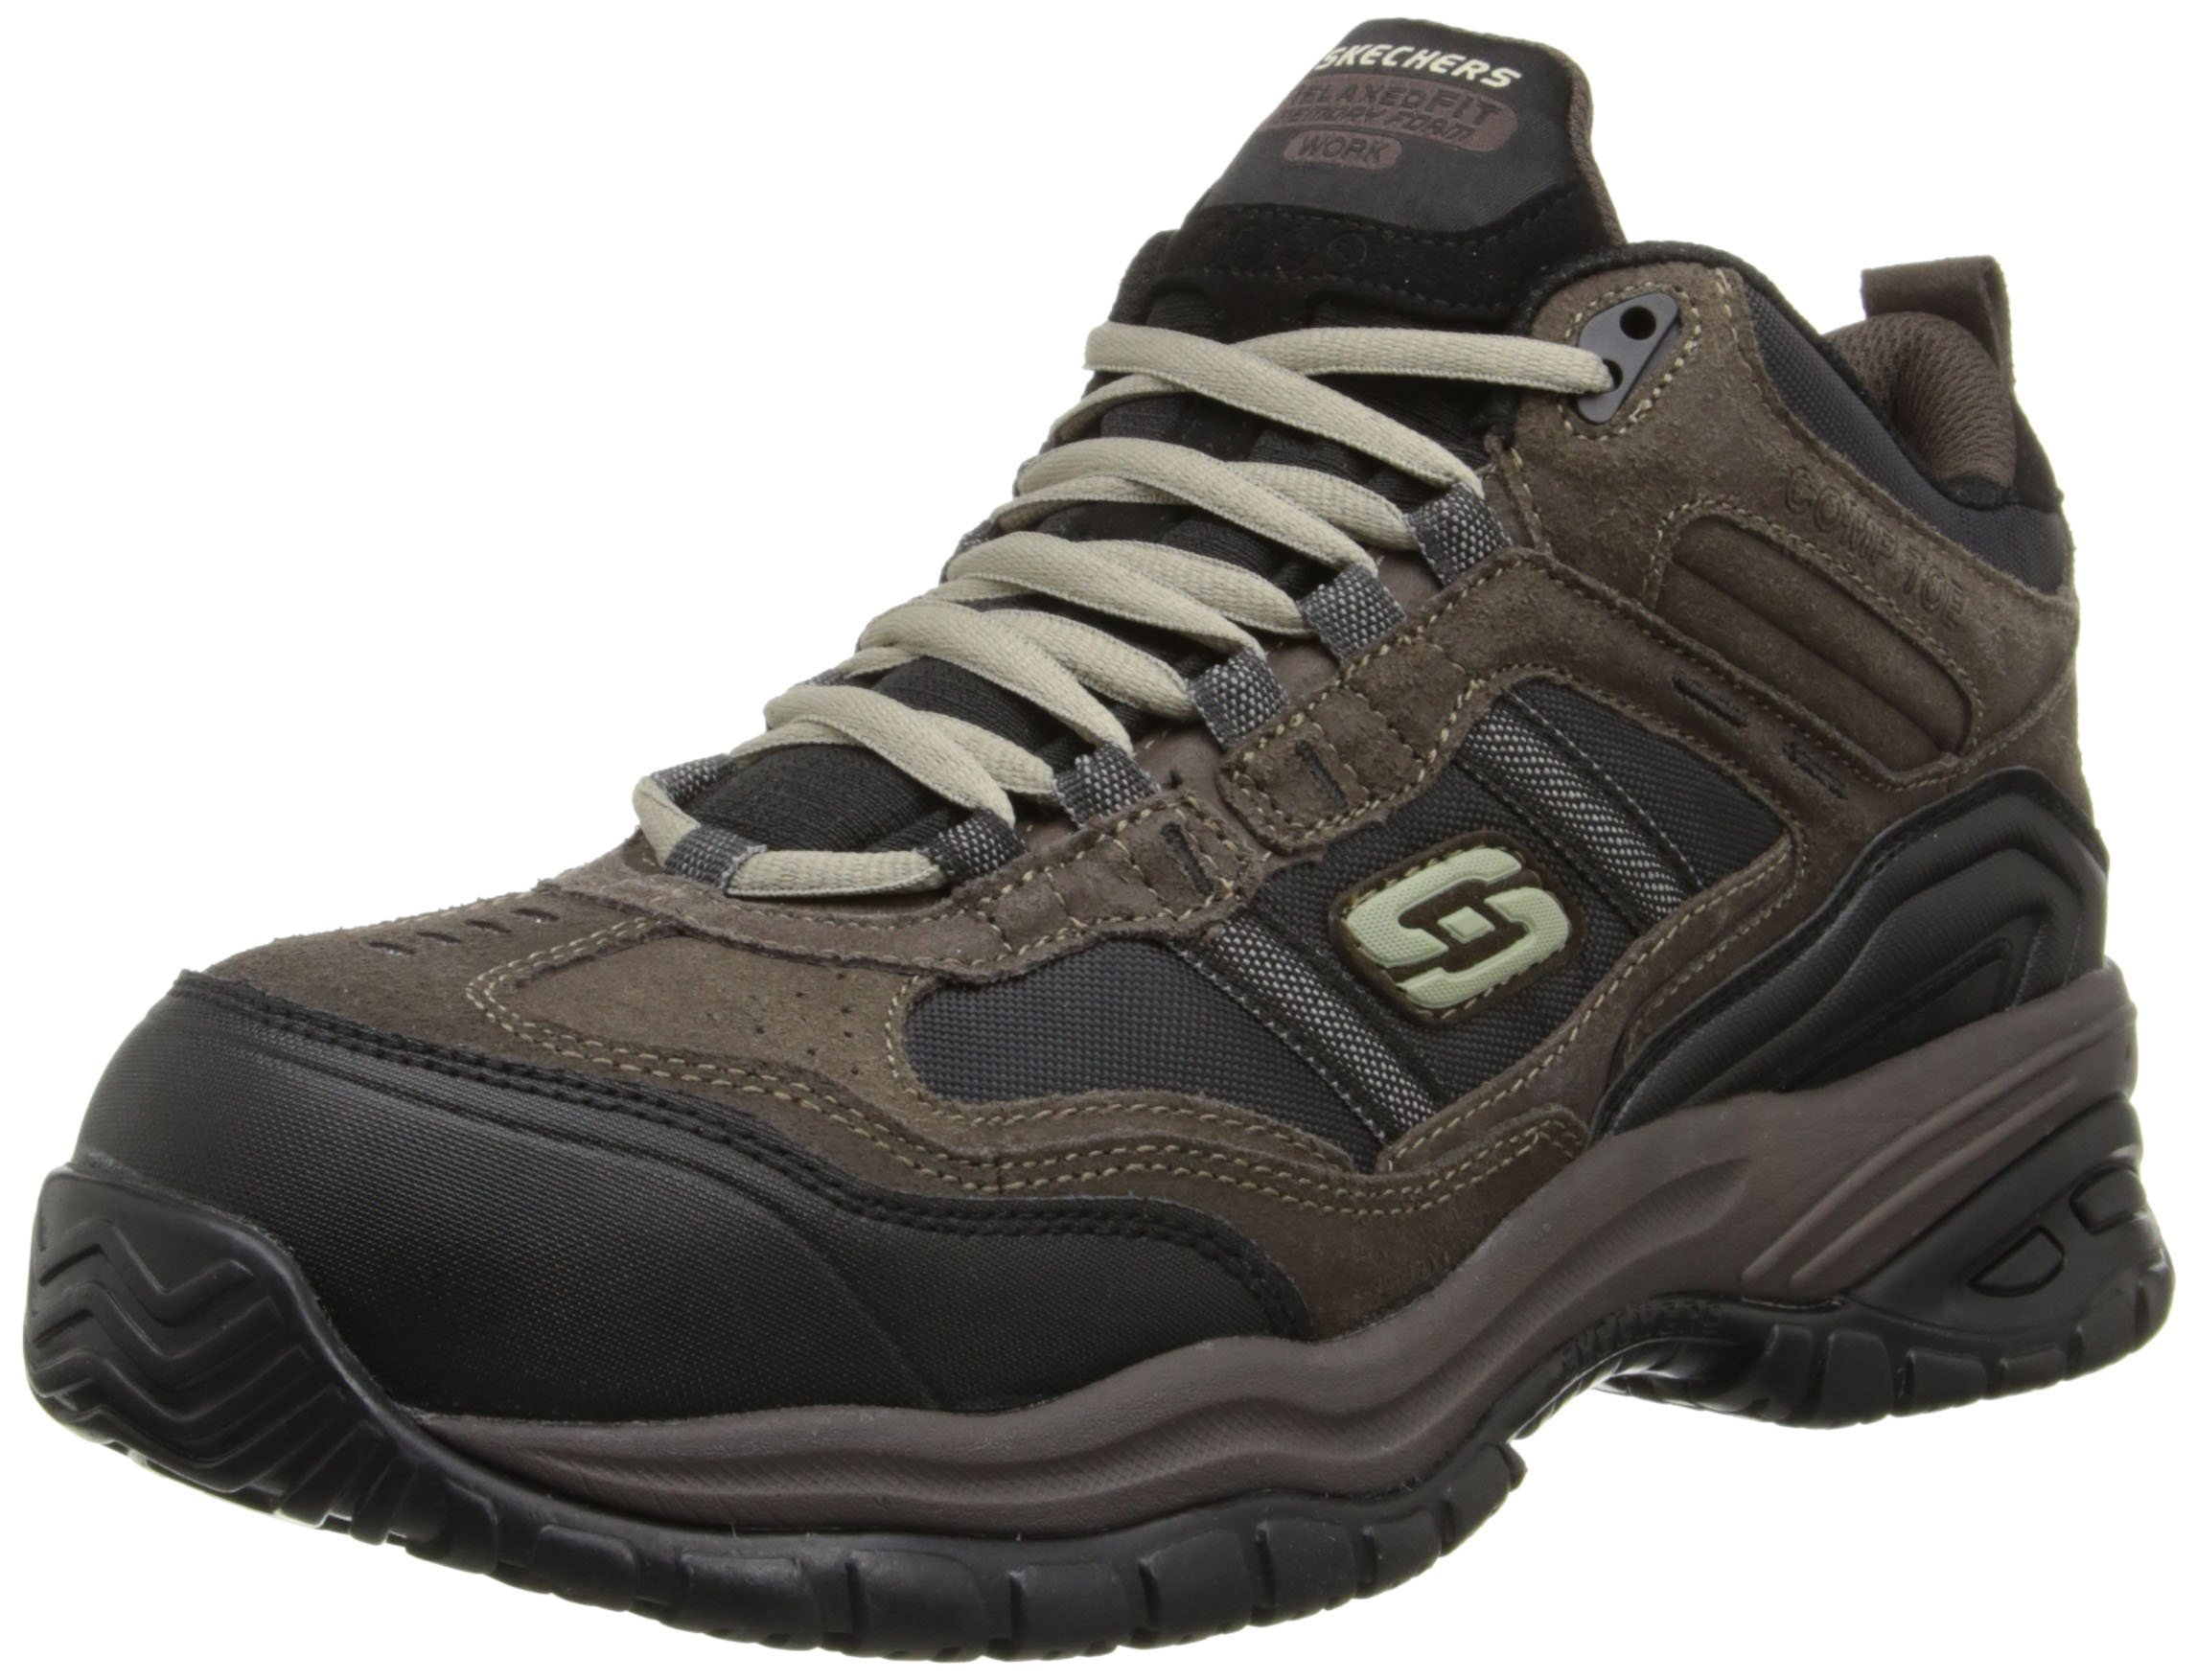 Skechers Men's Work Relaxed Fit Soft Stride Canopy Comp Toe Shoe, Brown/Black - 9.5 D(M) US by Skechers